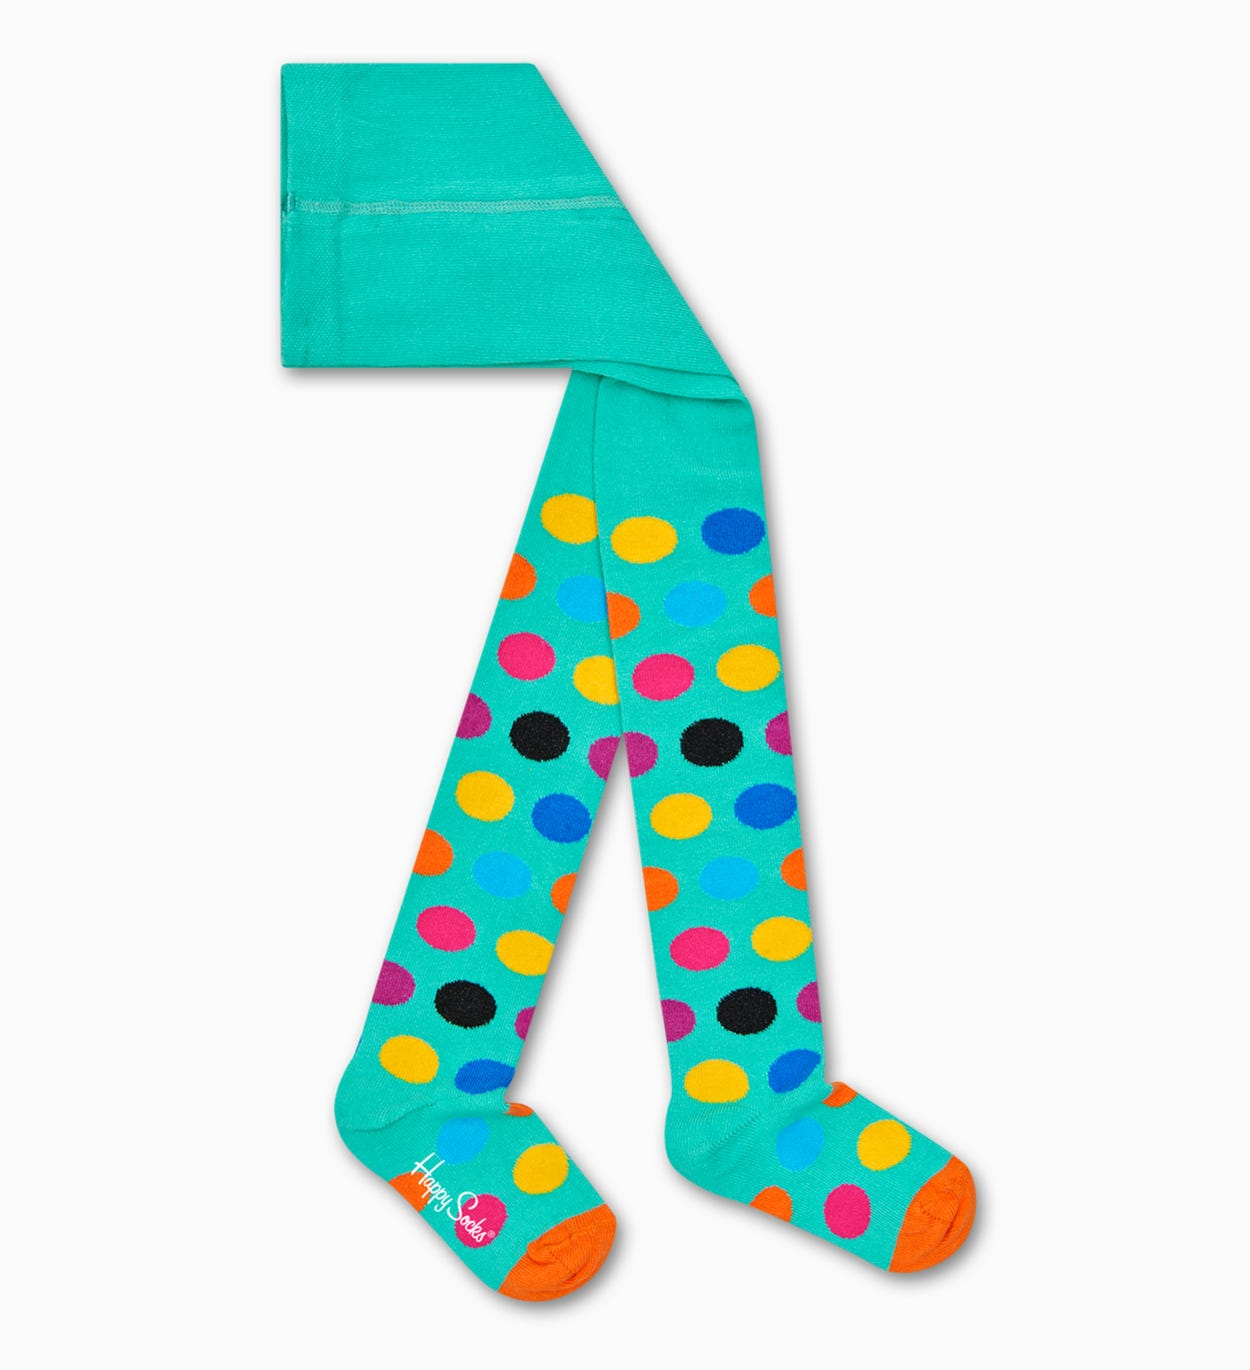 Turquoise kids & baby socks: Big Dot | Happy Socks